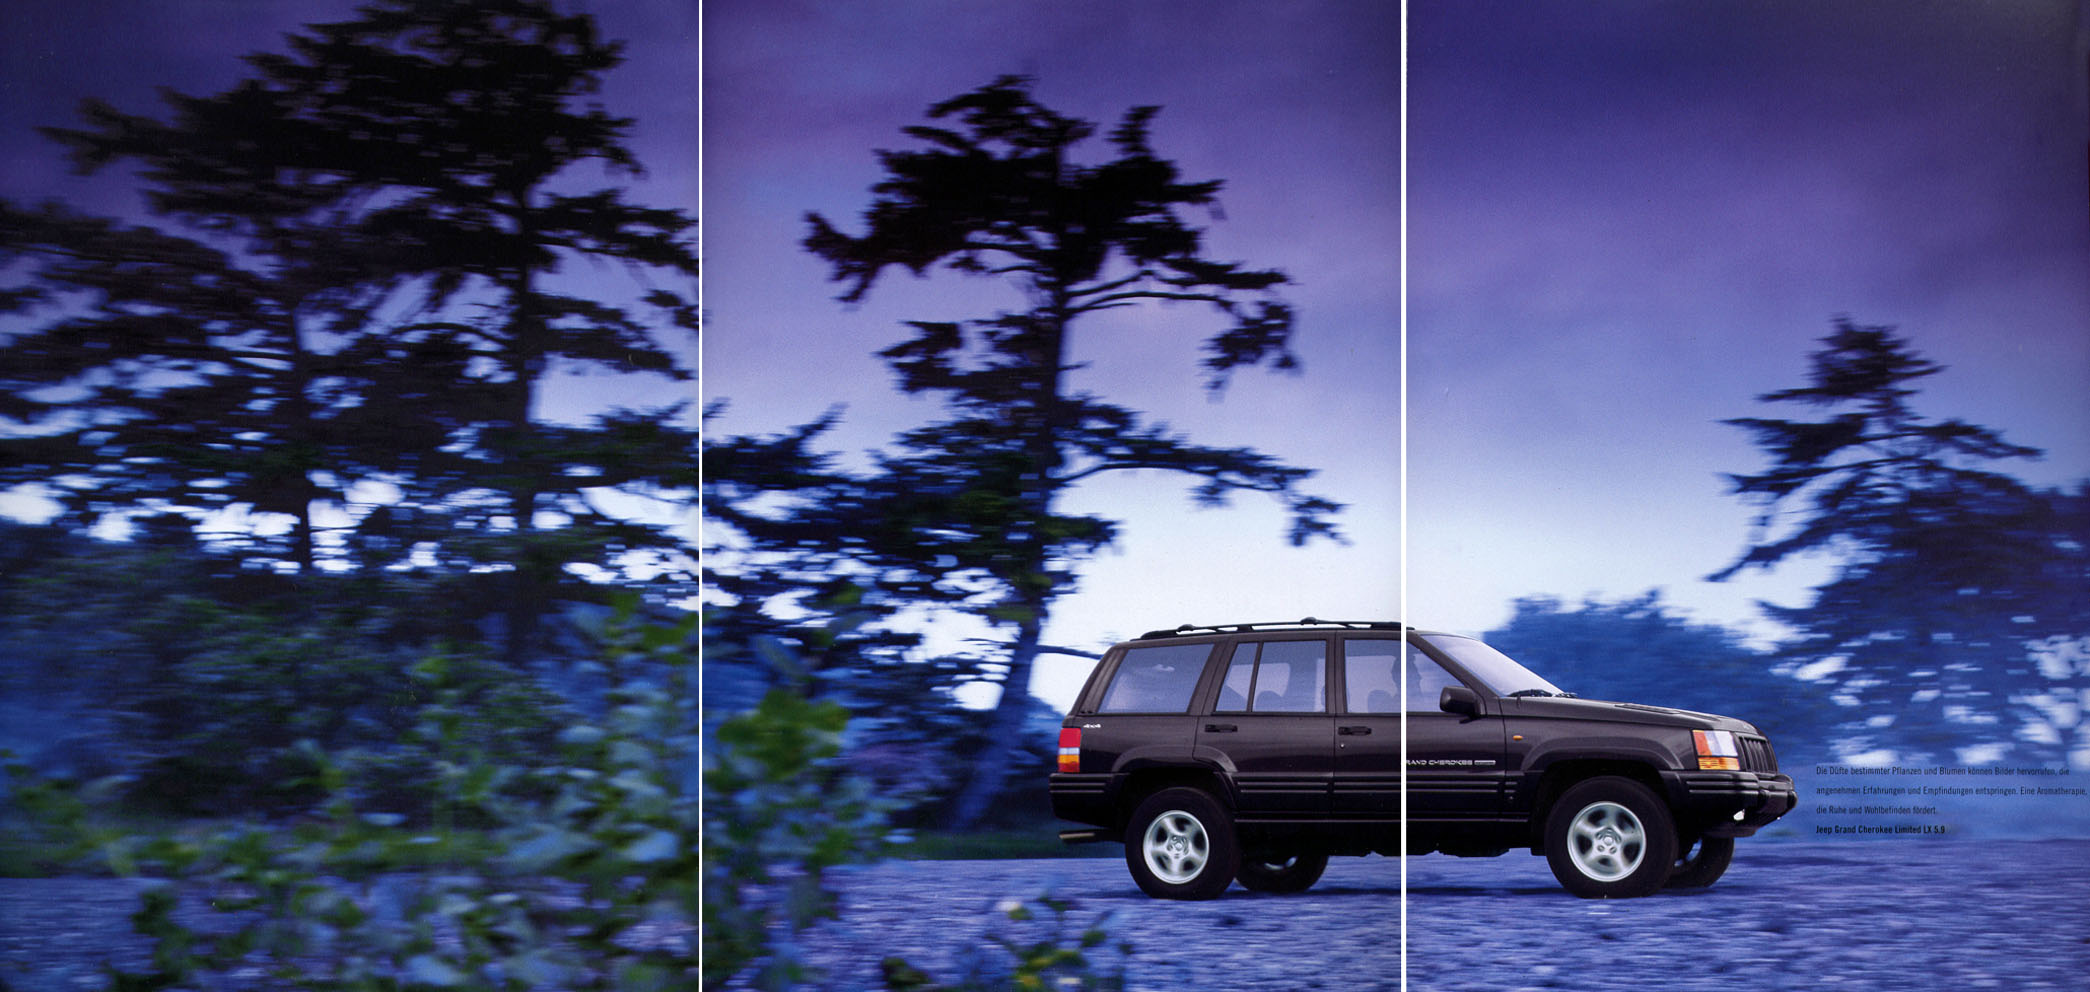 Dsc 0928 Jeep Hinten I204330873 additionally 98grand also Mdp photo thumbnails also J33nDcLz6u as well Wallpaper 0b. on grand cherokee